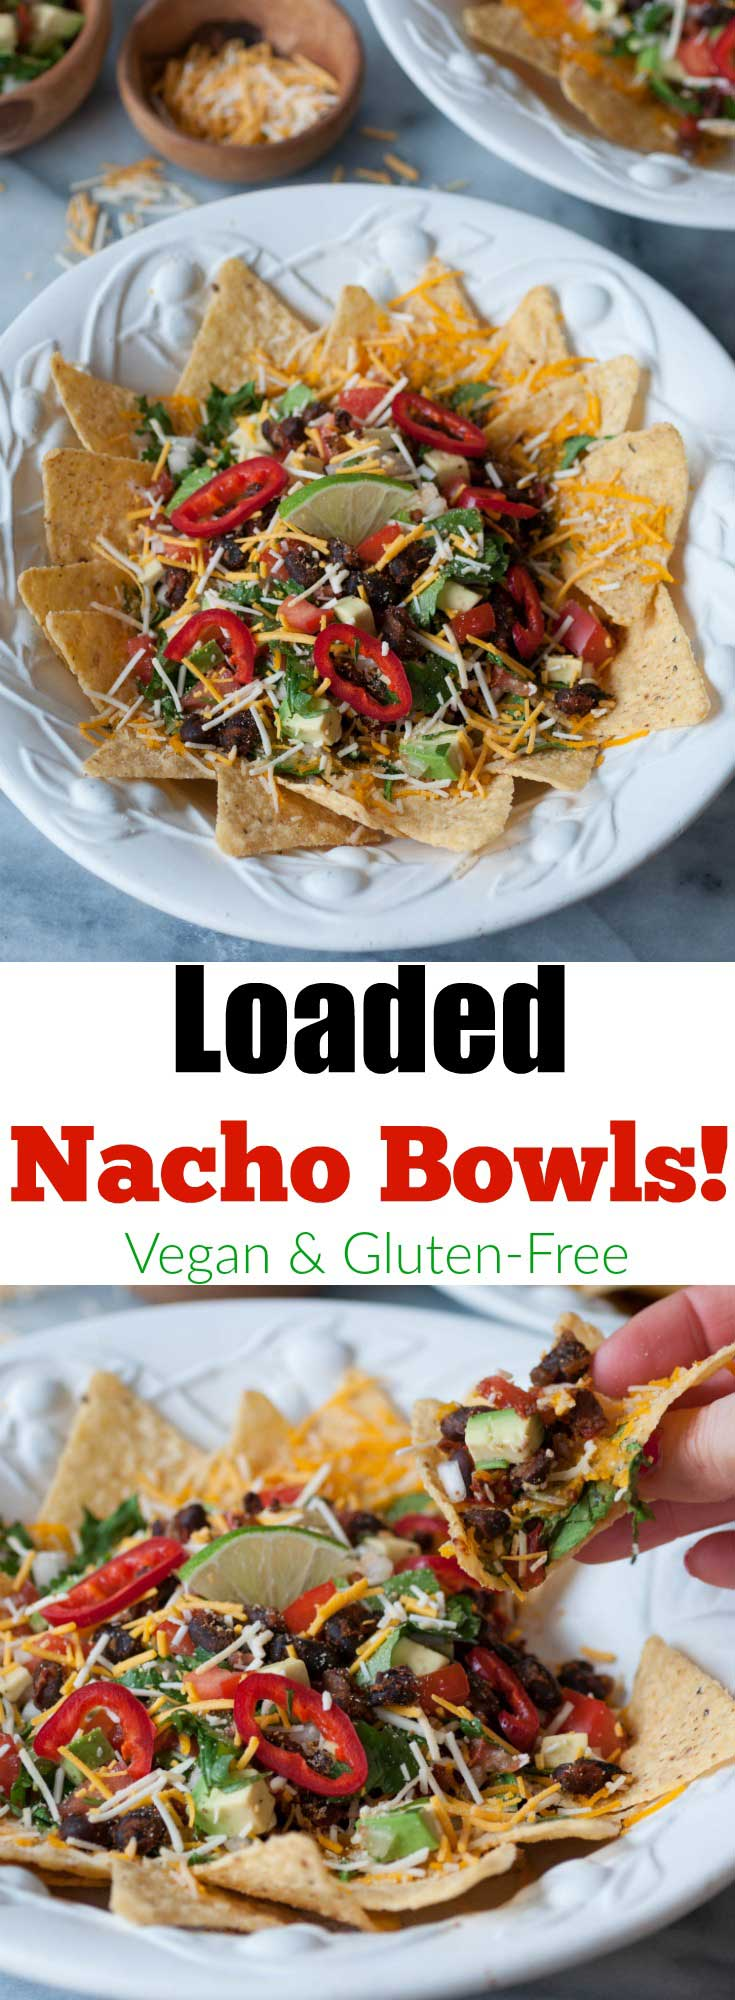 Vegan Nacho Bowls, loaded with spicy black beans, veggie salsa, avocado, vegan cheddar Jack, and a whole lot of yum! Perfect for a Taco Tuesday dinner or an appetizer.